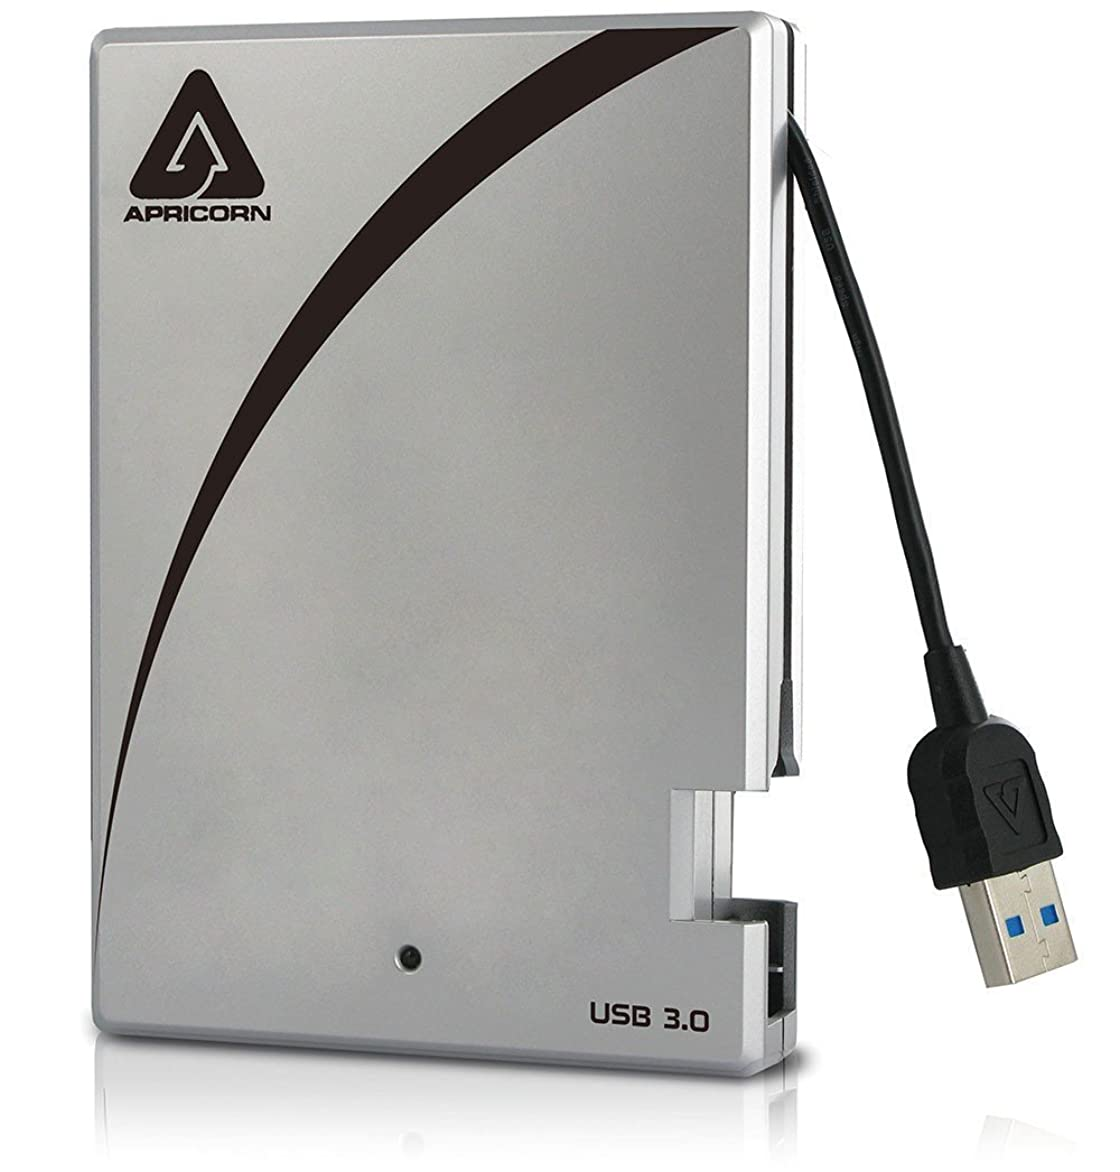 ハンドブック個人的なスタンドApricorn Aegis Portable 3.0 USB 500 GB Drive with Integrated USB Cable (A25-3USB-500) [並行輸入品]